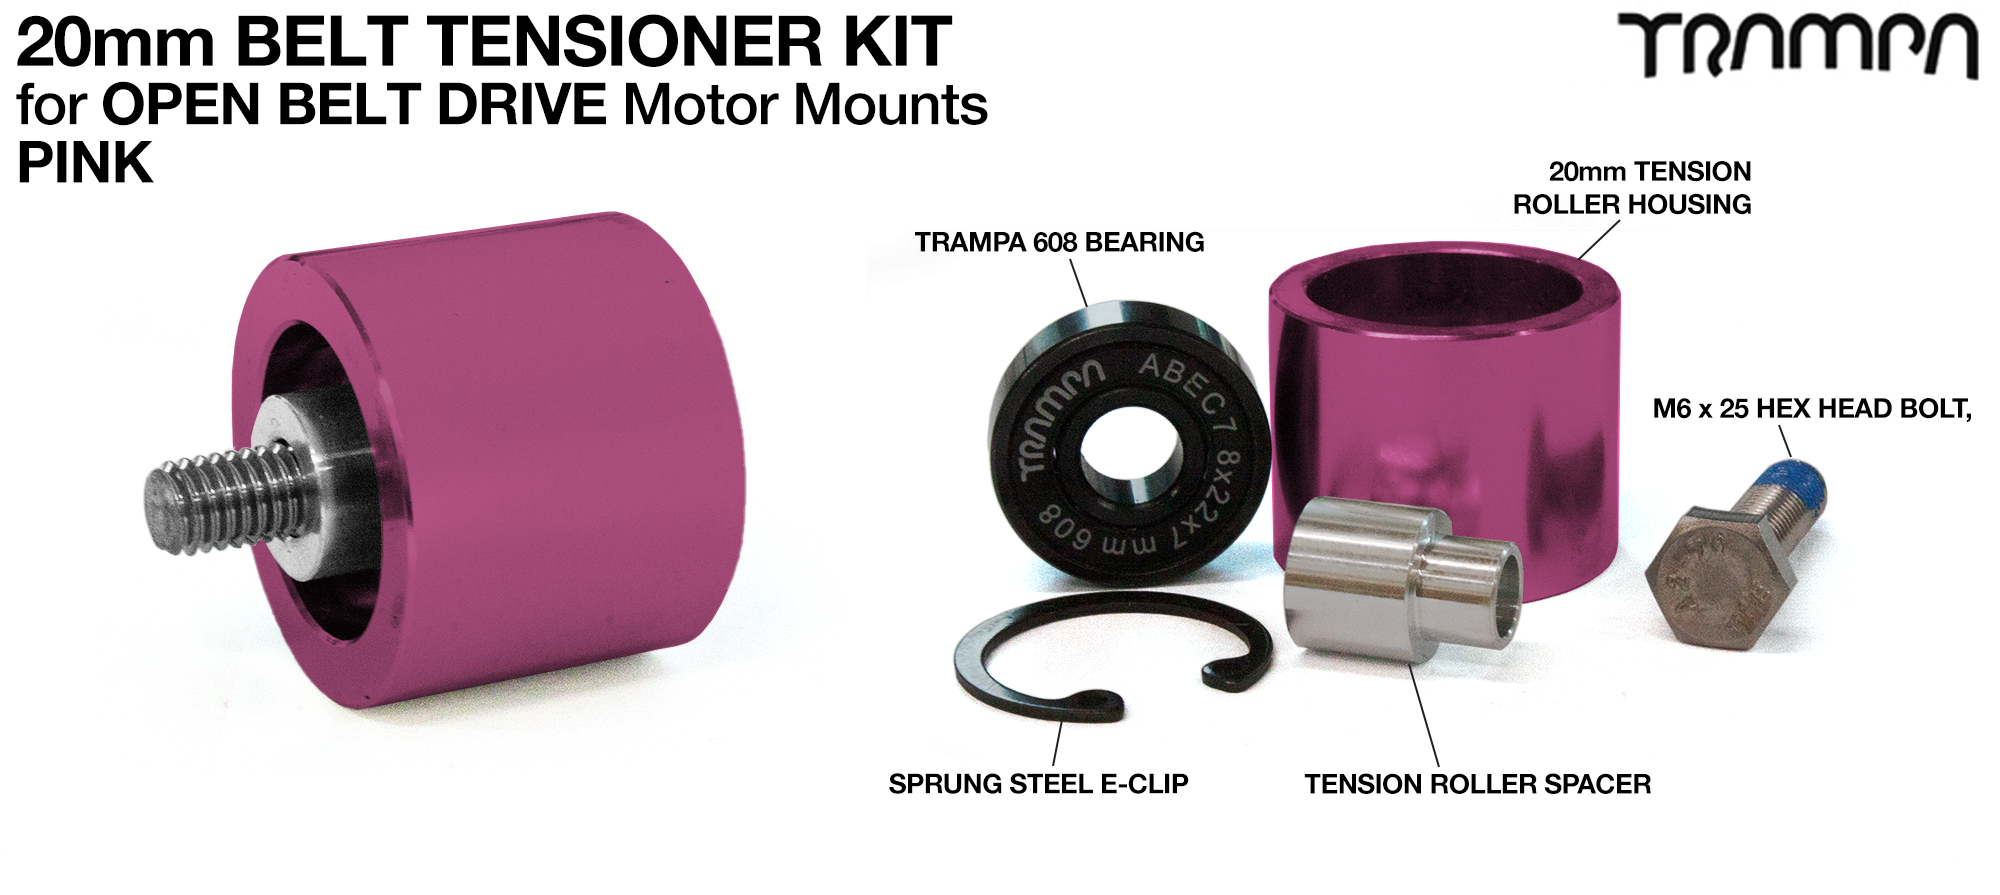 PINK OBD 20mm Belt Tensioner